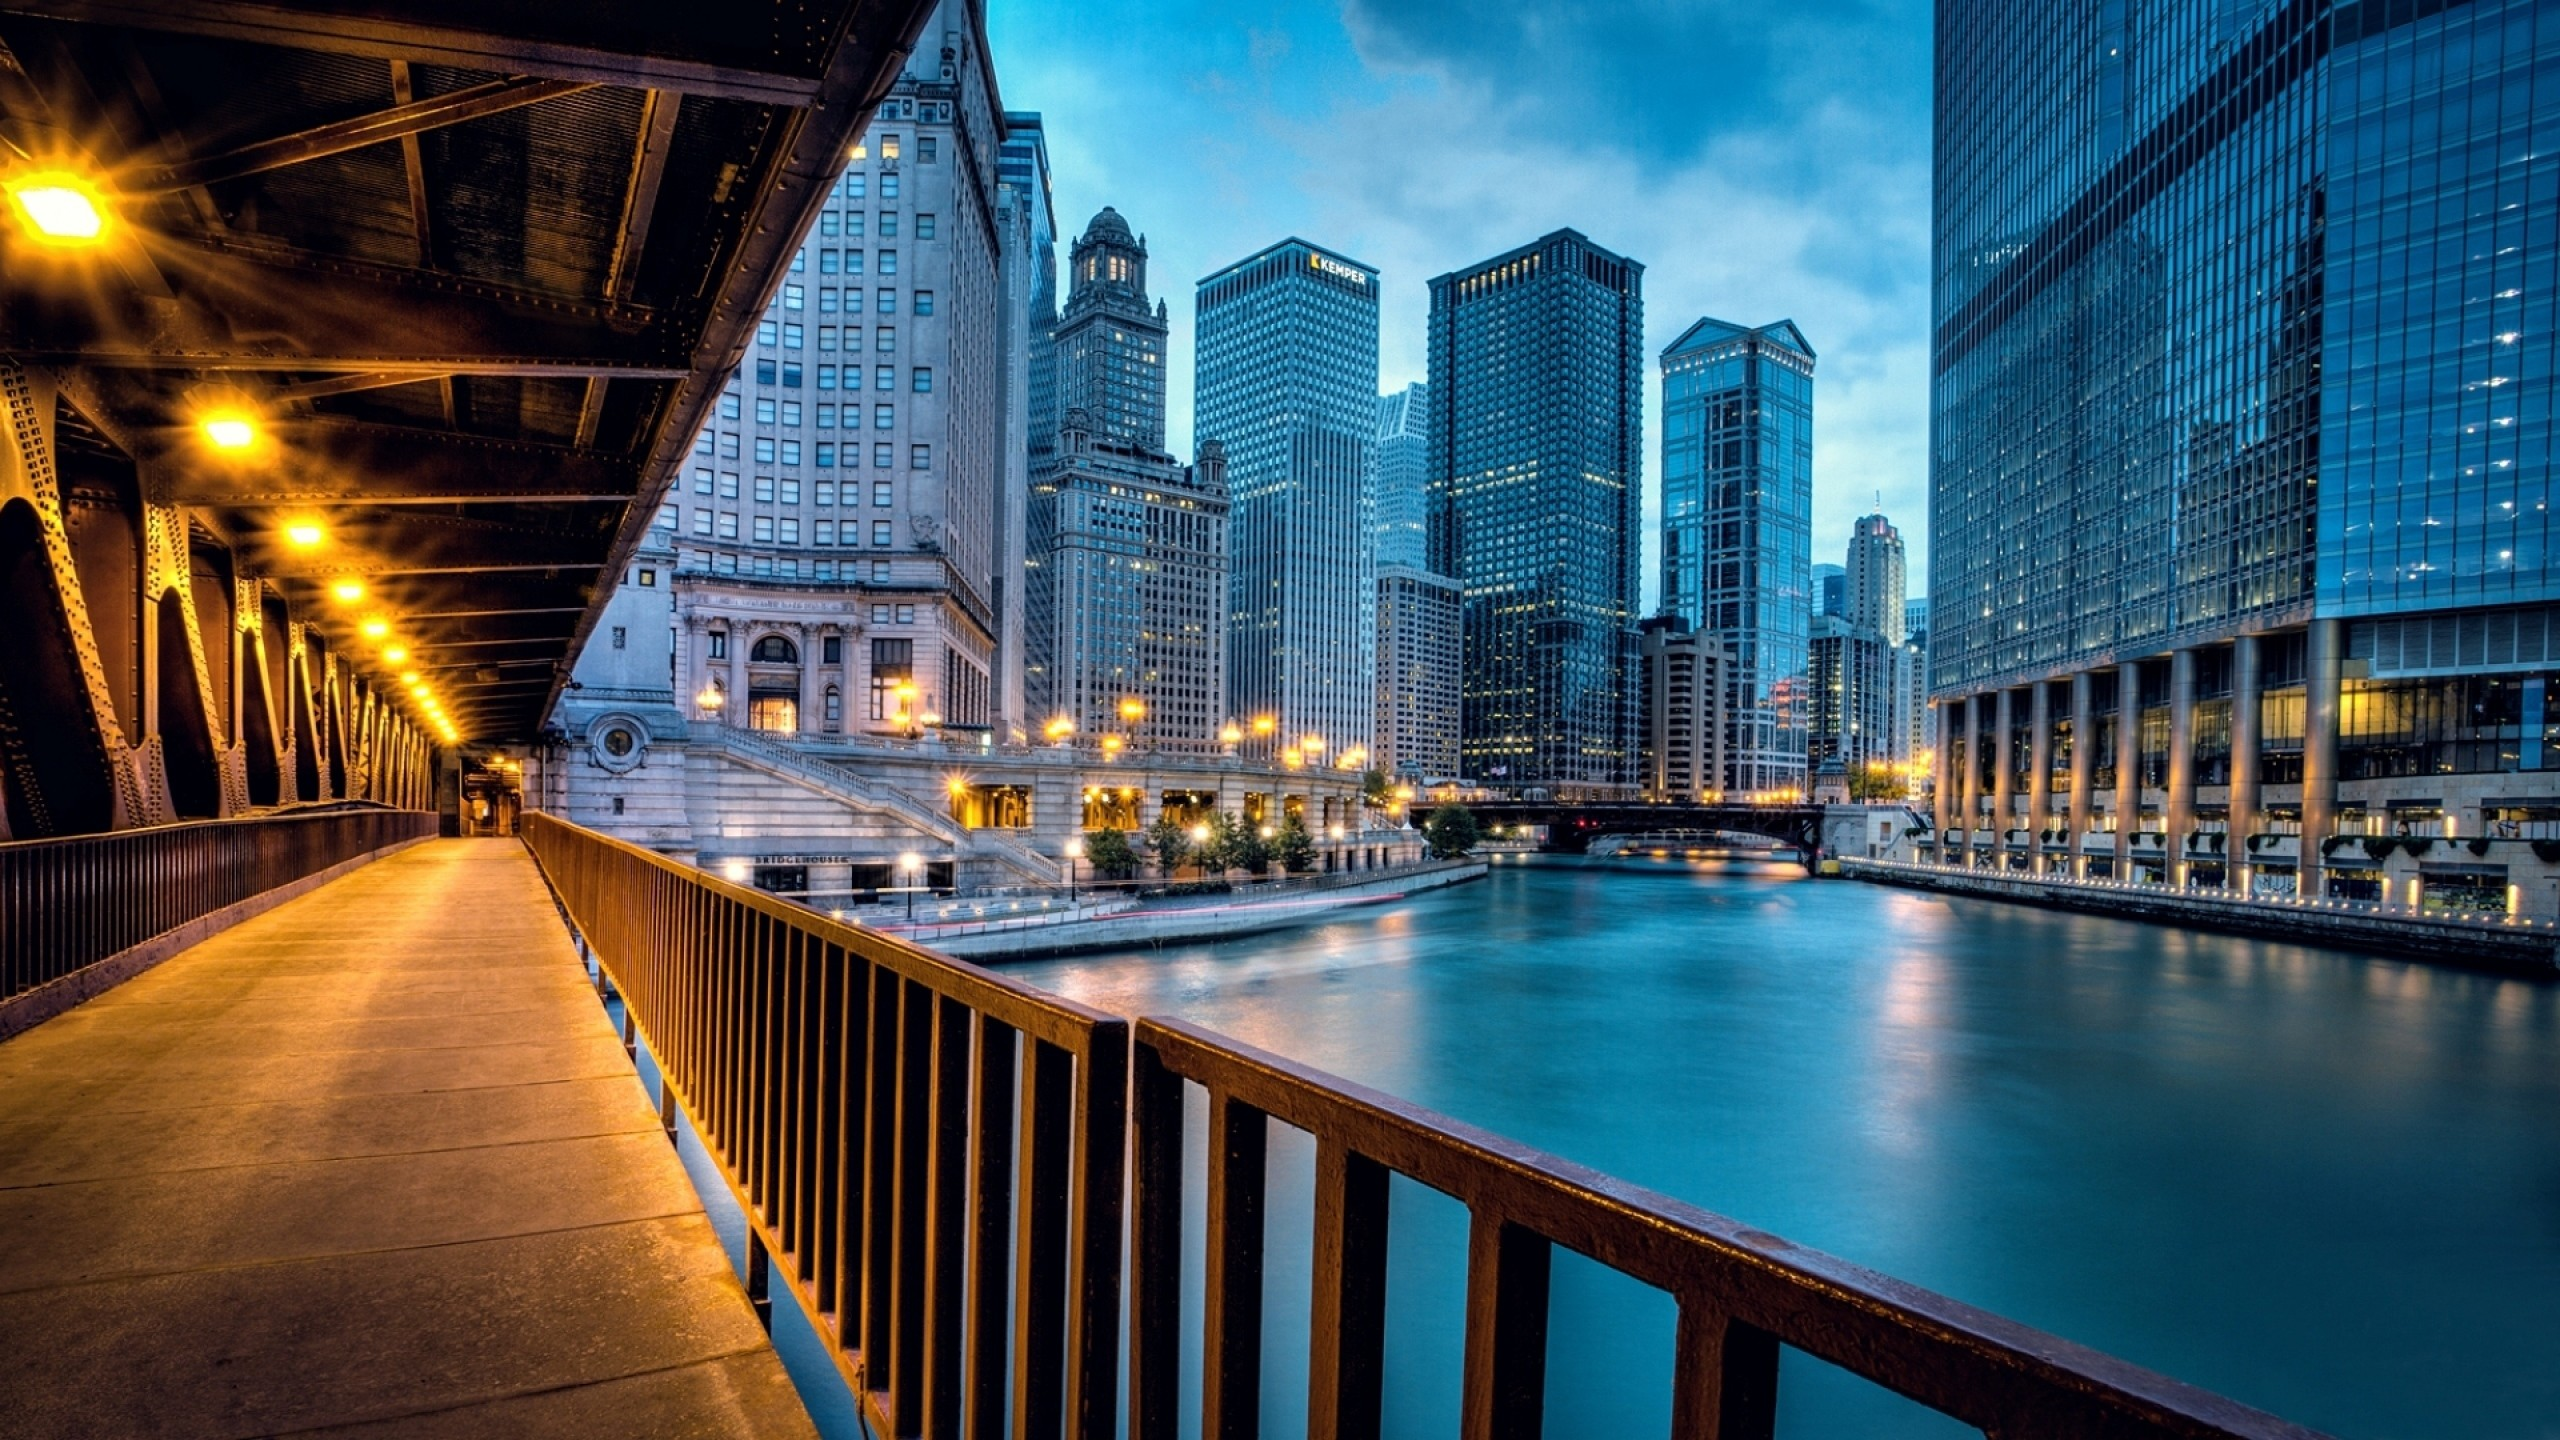 2560x1440 Preview wallpaper chicago, llinois, illinois, usa, united states, city,  evening